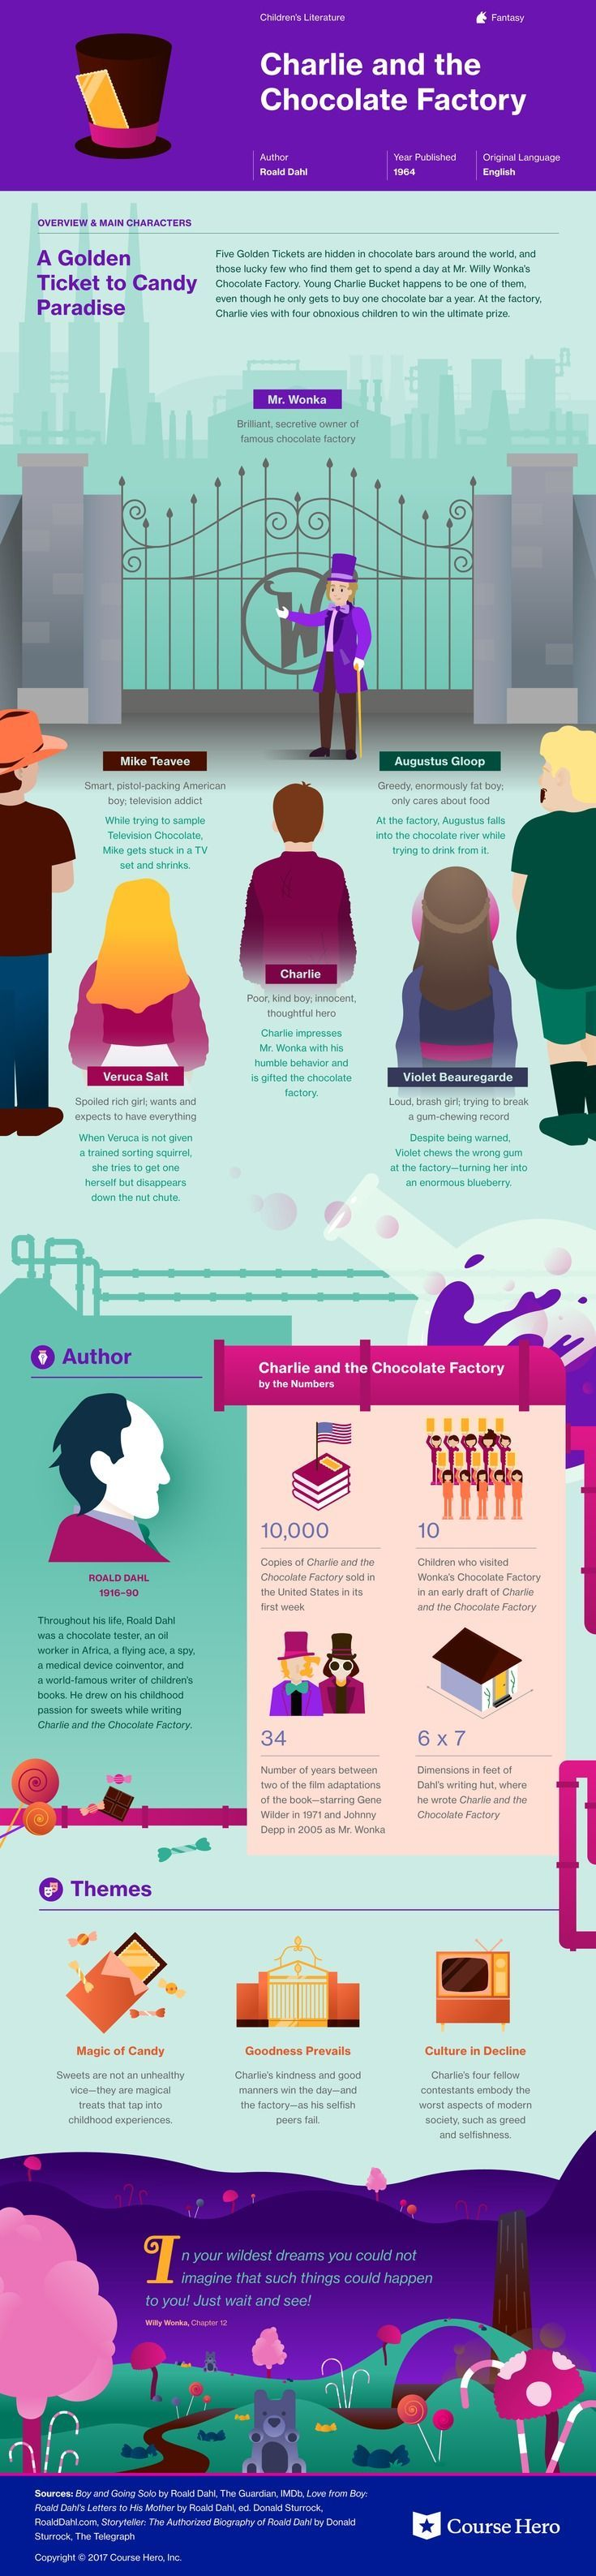 This Coursehero Infographic On Charlie And The Chocolate Factory